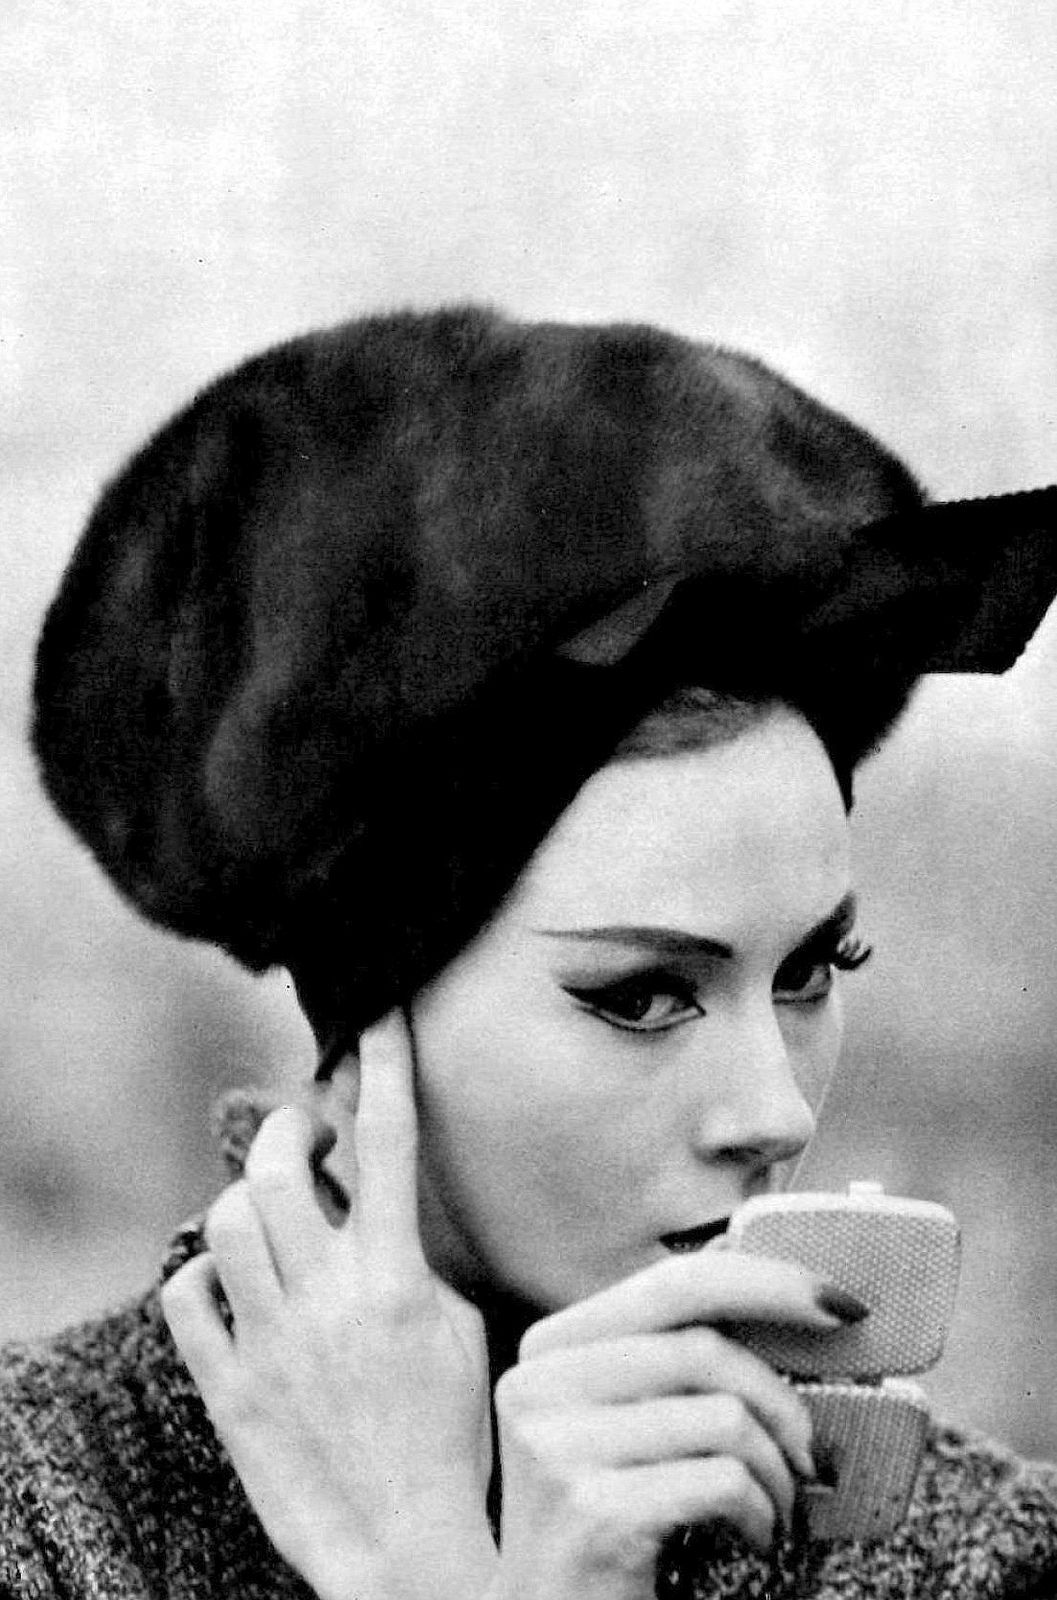 Model in mink beret with satin band by Jean Barthet, photo by Georges Saad, 1961